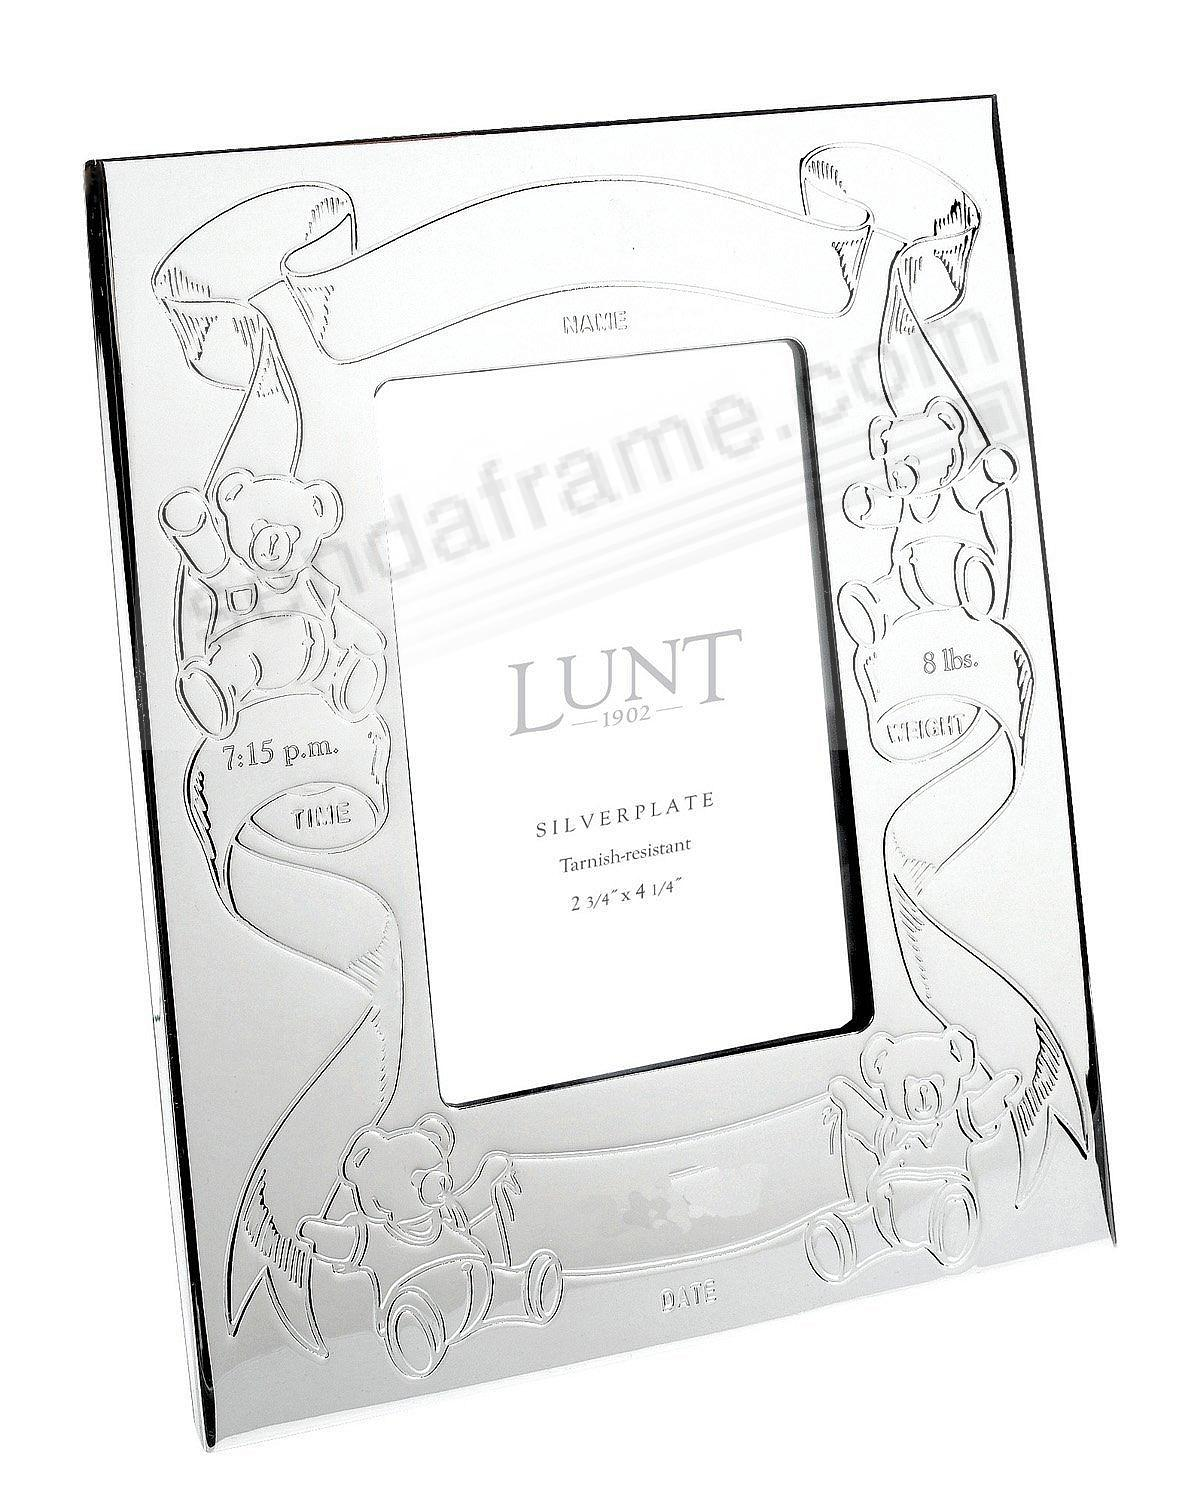 Silver Newborn Baby Birth Record By Lunt Silver Picture Frames